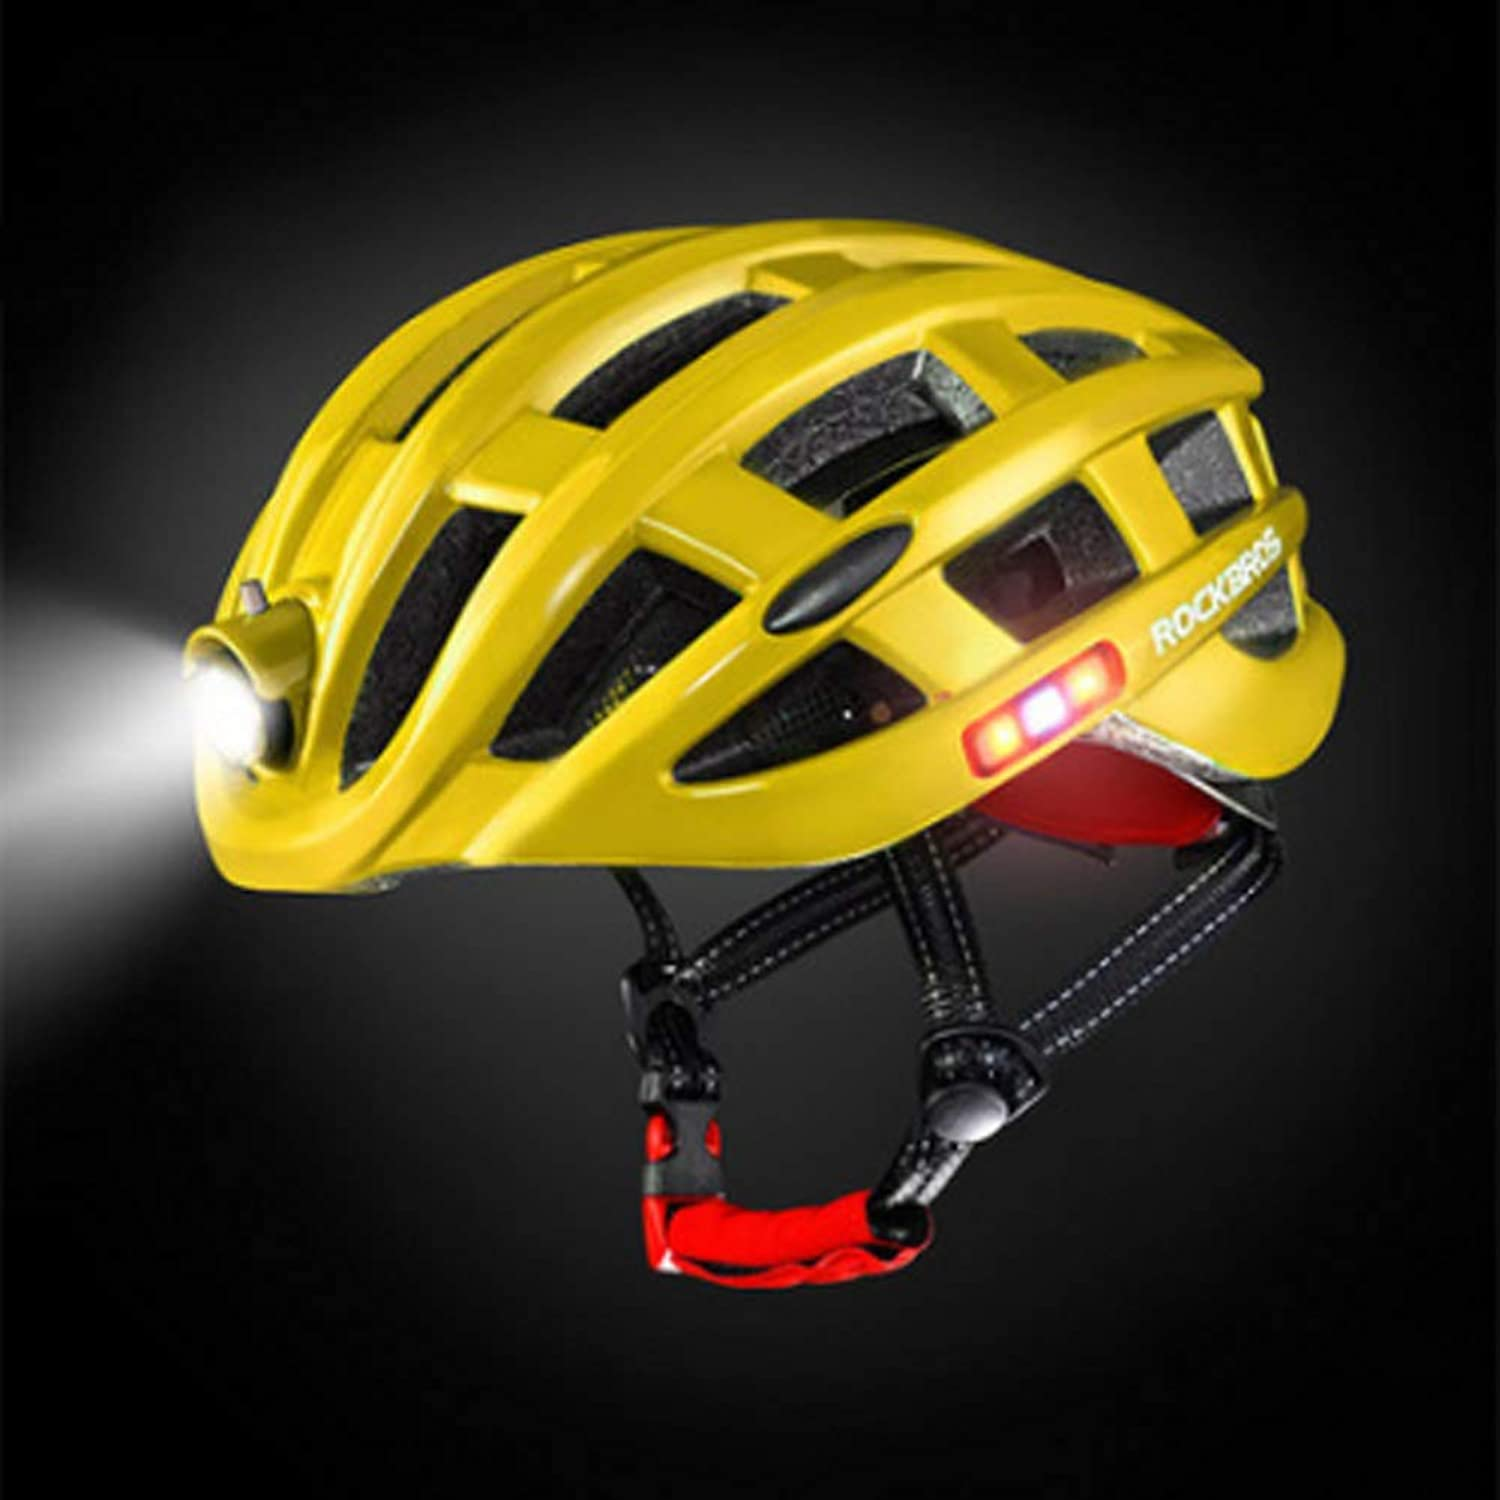 Riding Helmet with Lights Rechargeable Light Insect Nets Mountain Road Bicycle Helmet Equipment Men and Women,Yellow